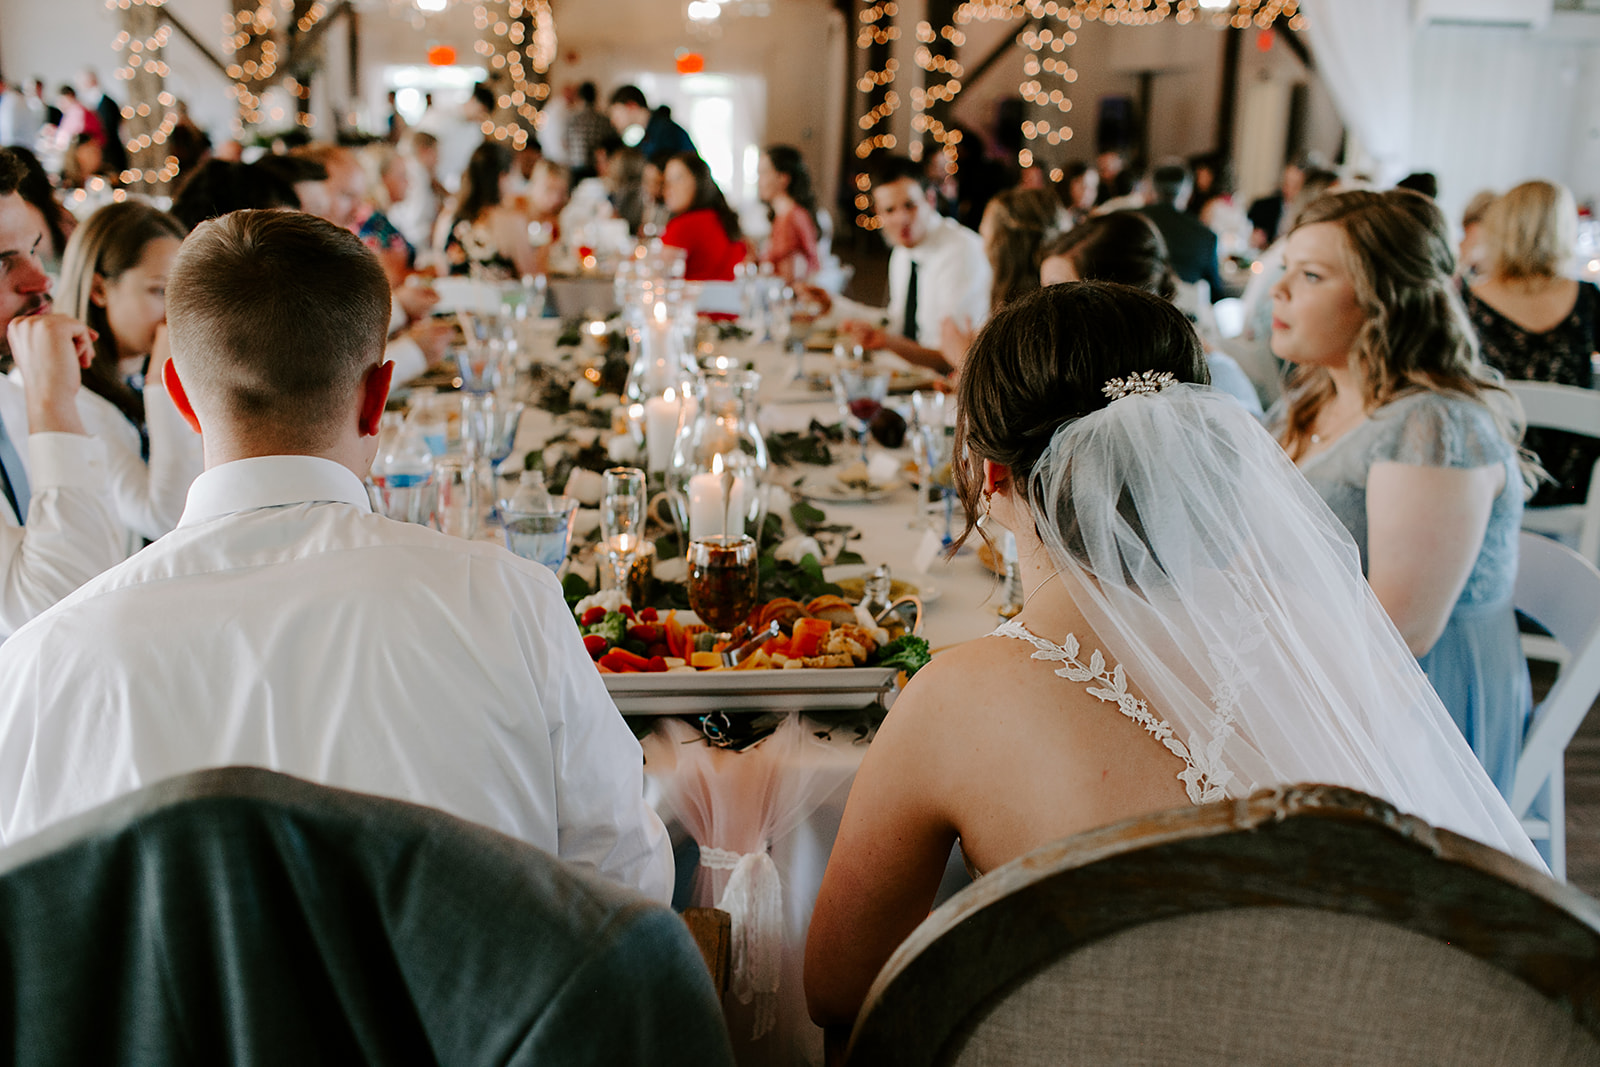 Kendra_and_Mattew_Indiana_Wedding_by_Emily_Wehner-741.jpg